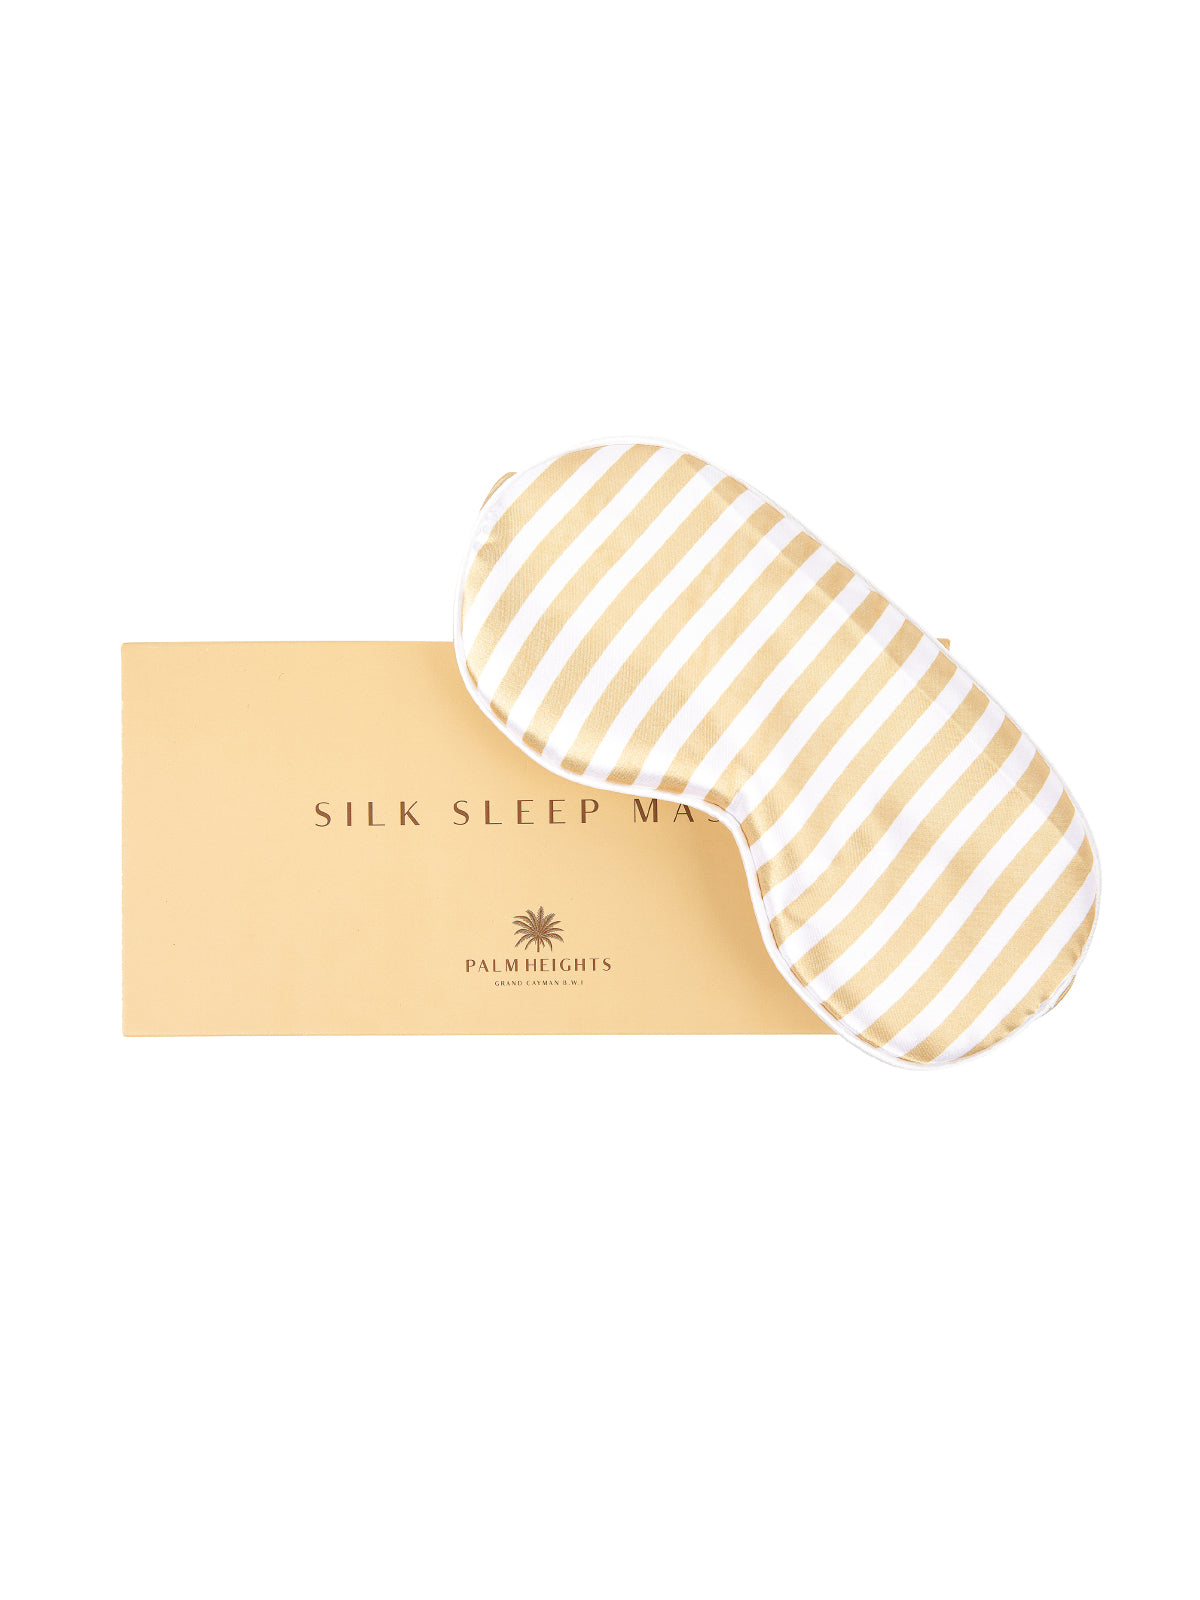 silk sleeping mask with packaging